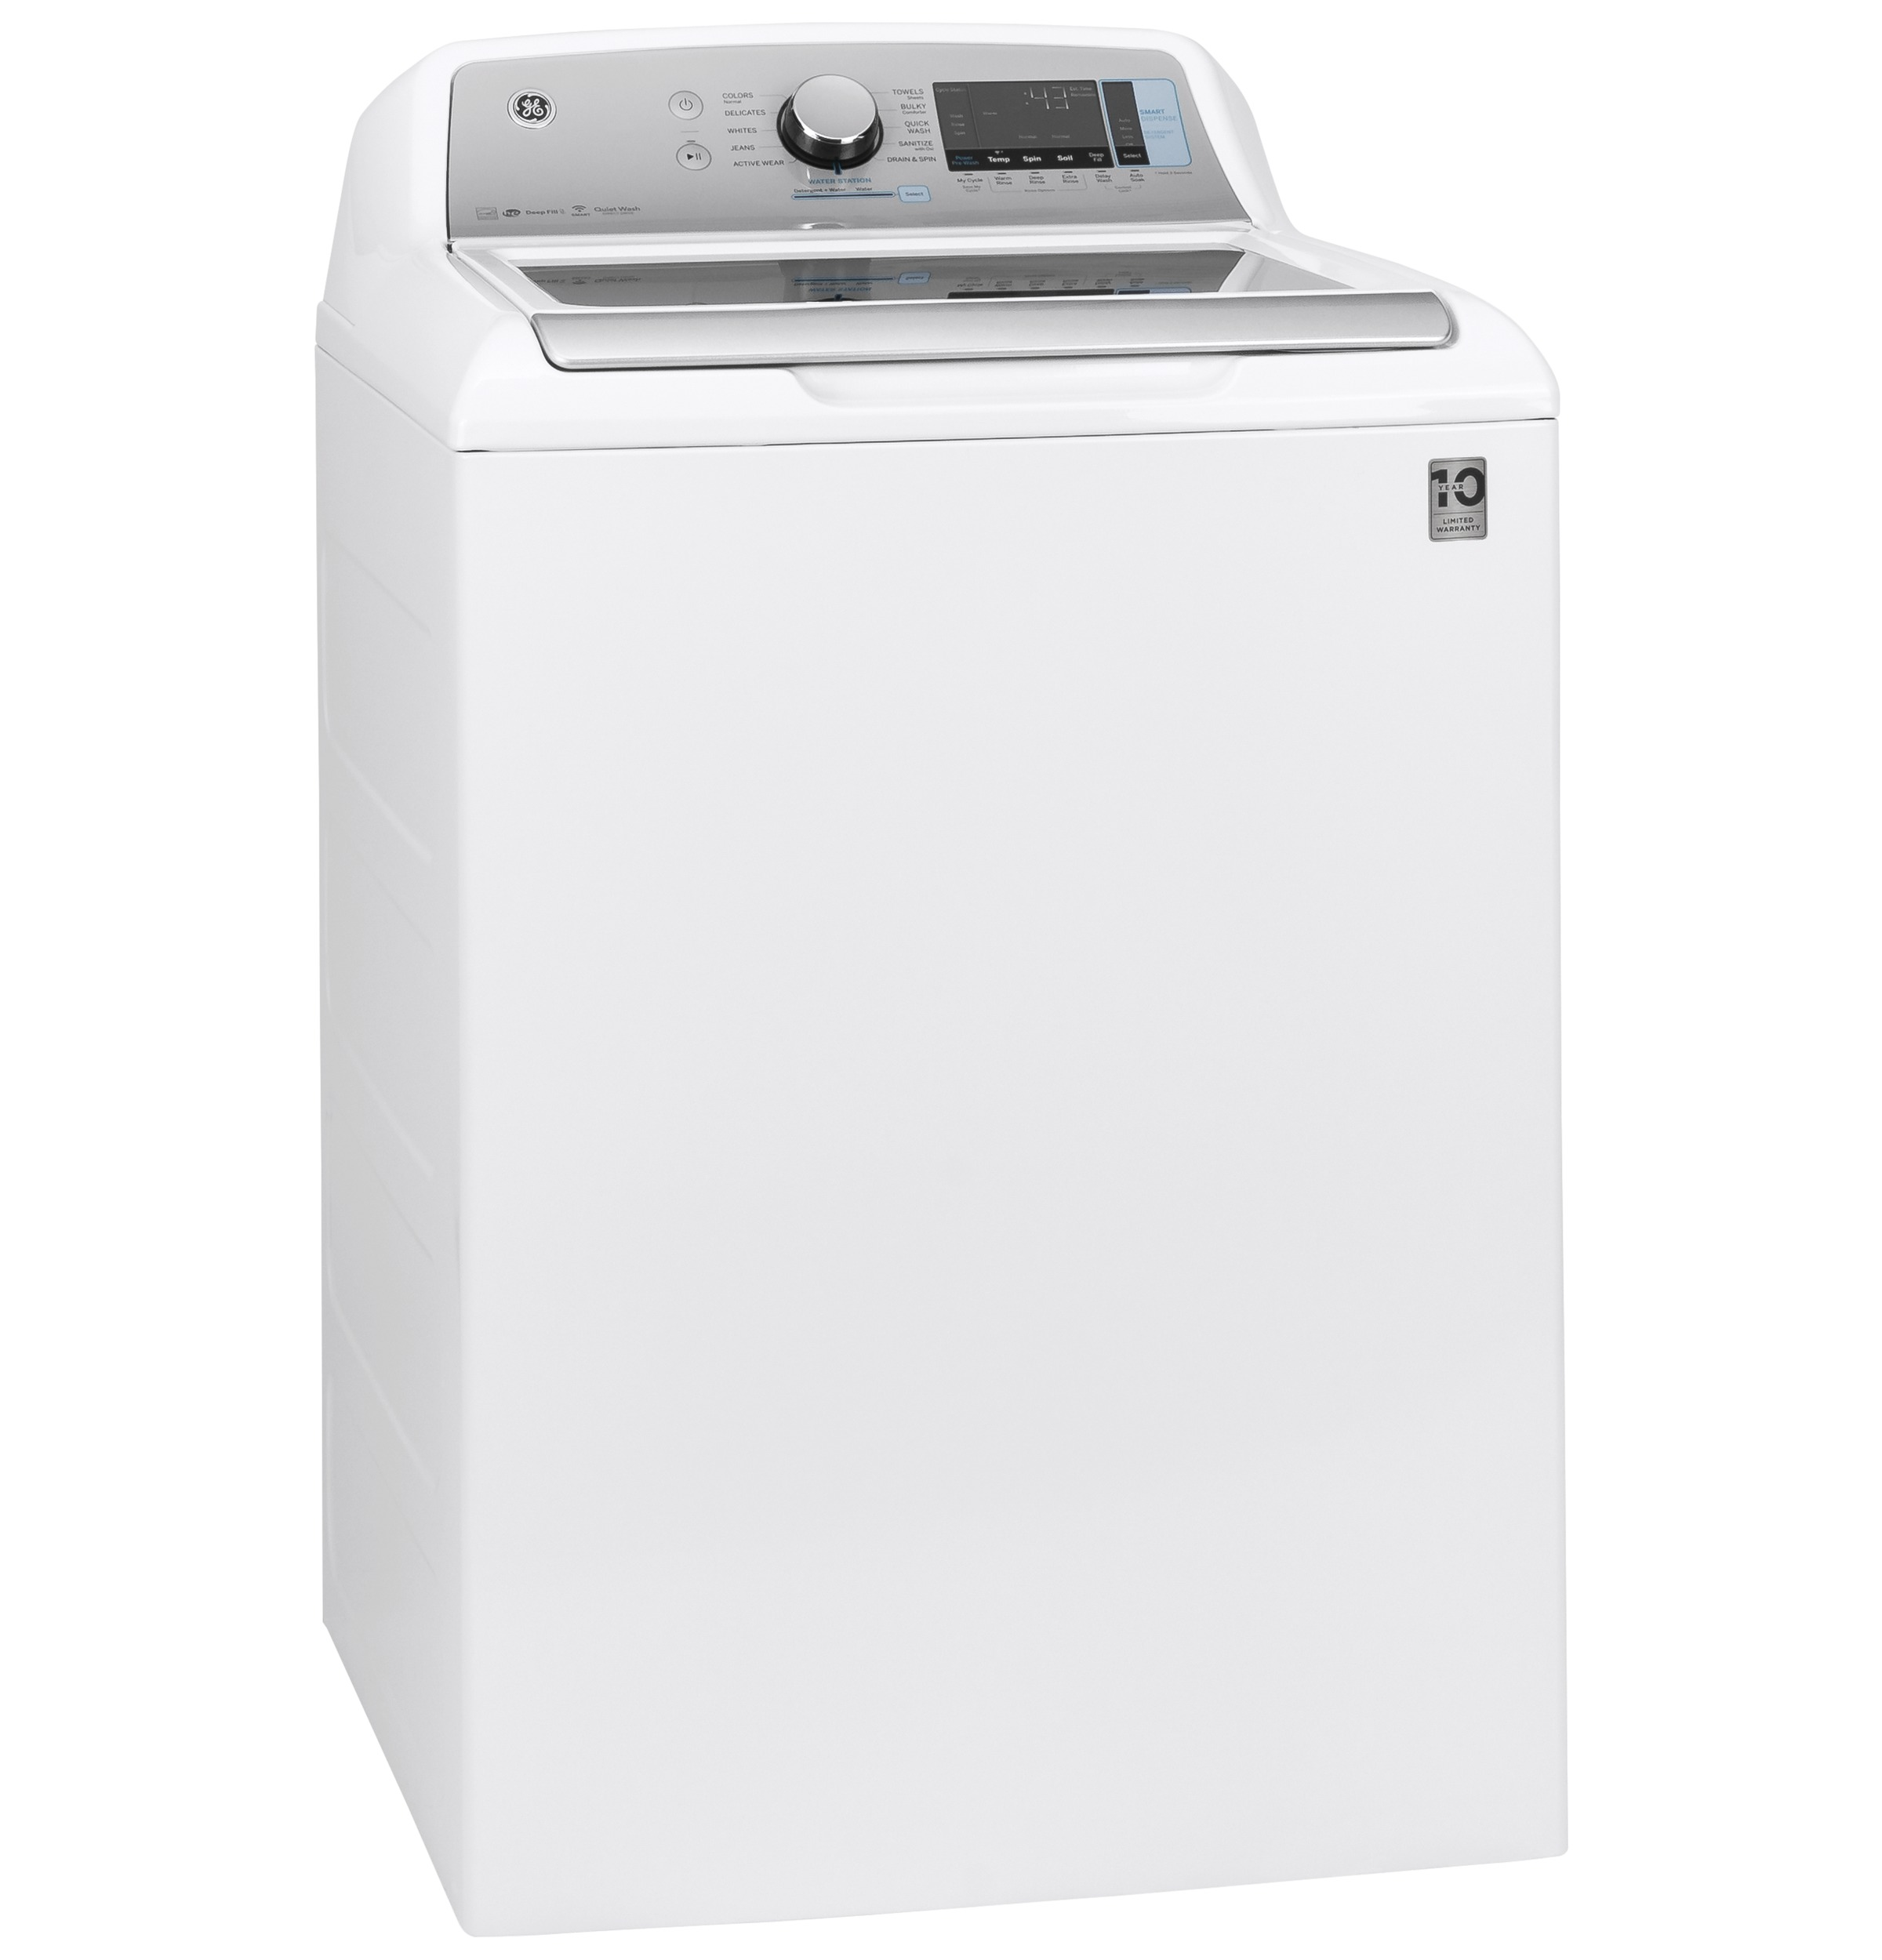 Model: GTW845CSNWS | GE GE® 5.0  cu. ft. Capacity Smart Washer with Sanitize w/Oxi and SmartDispense